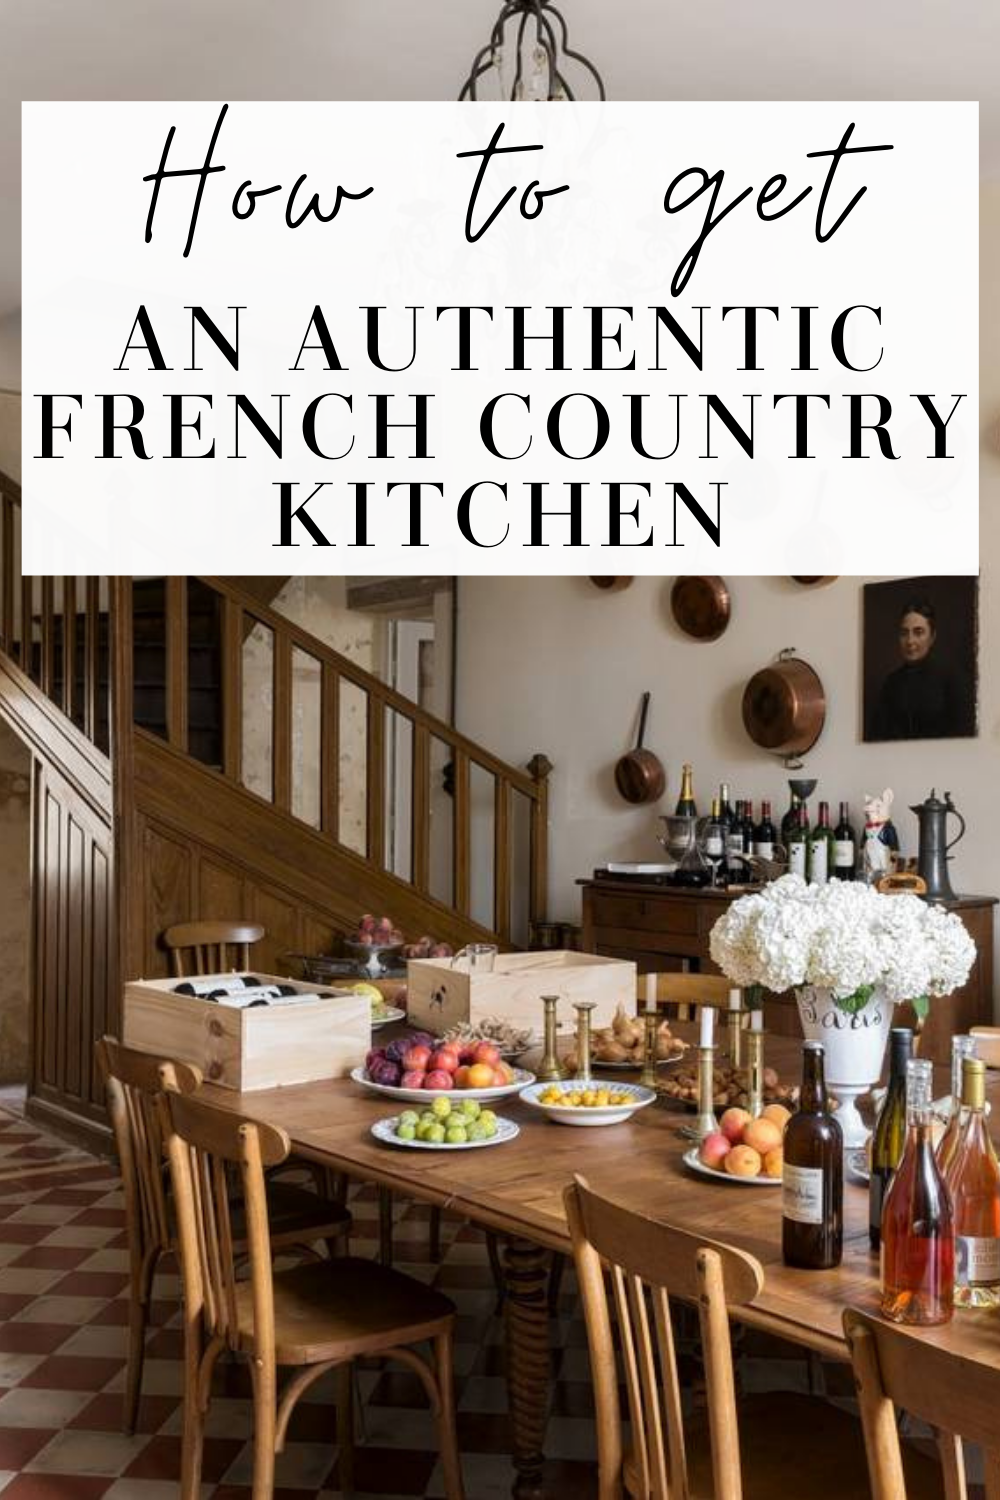 authentic french country kitchen